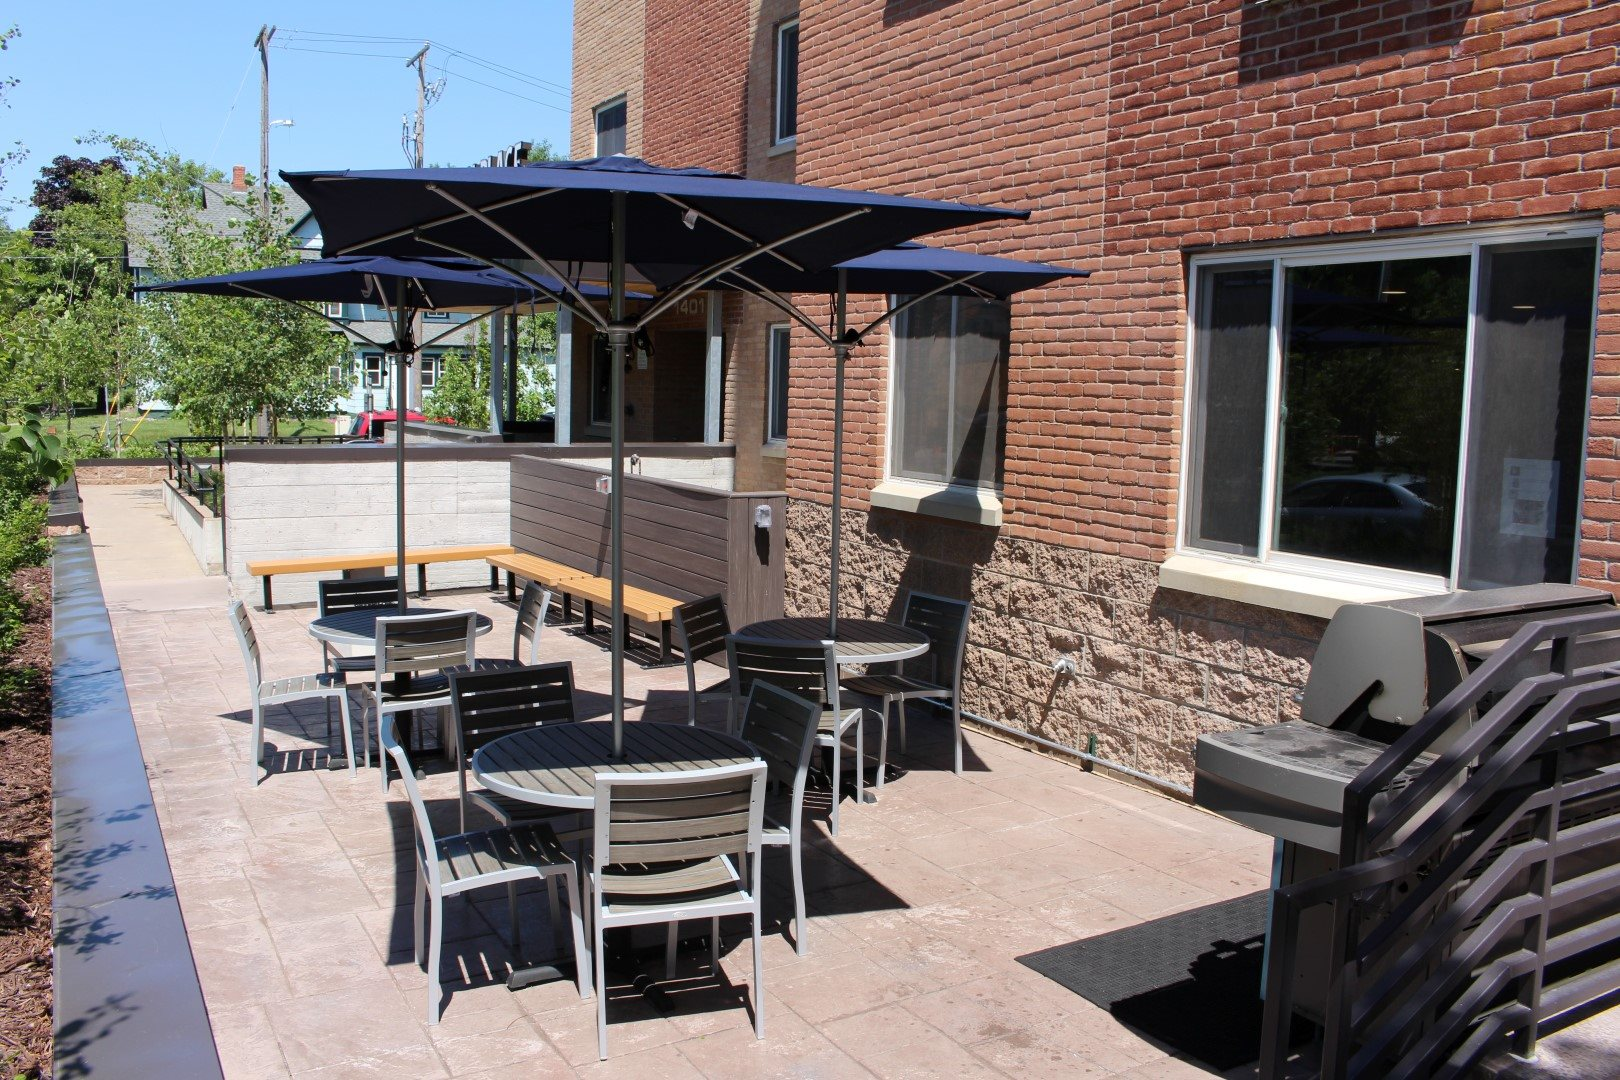 Bierman Place Exterior Patio